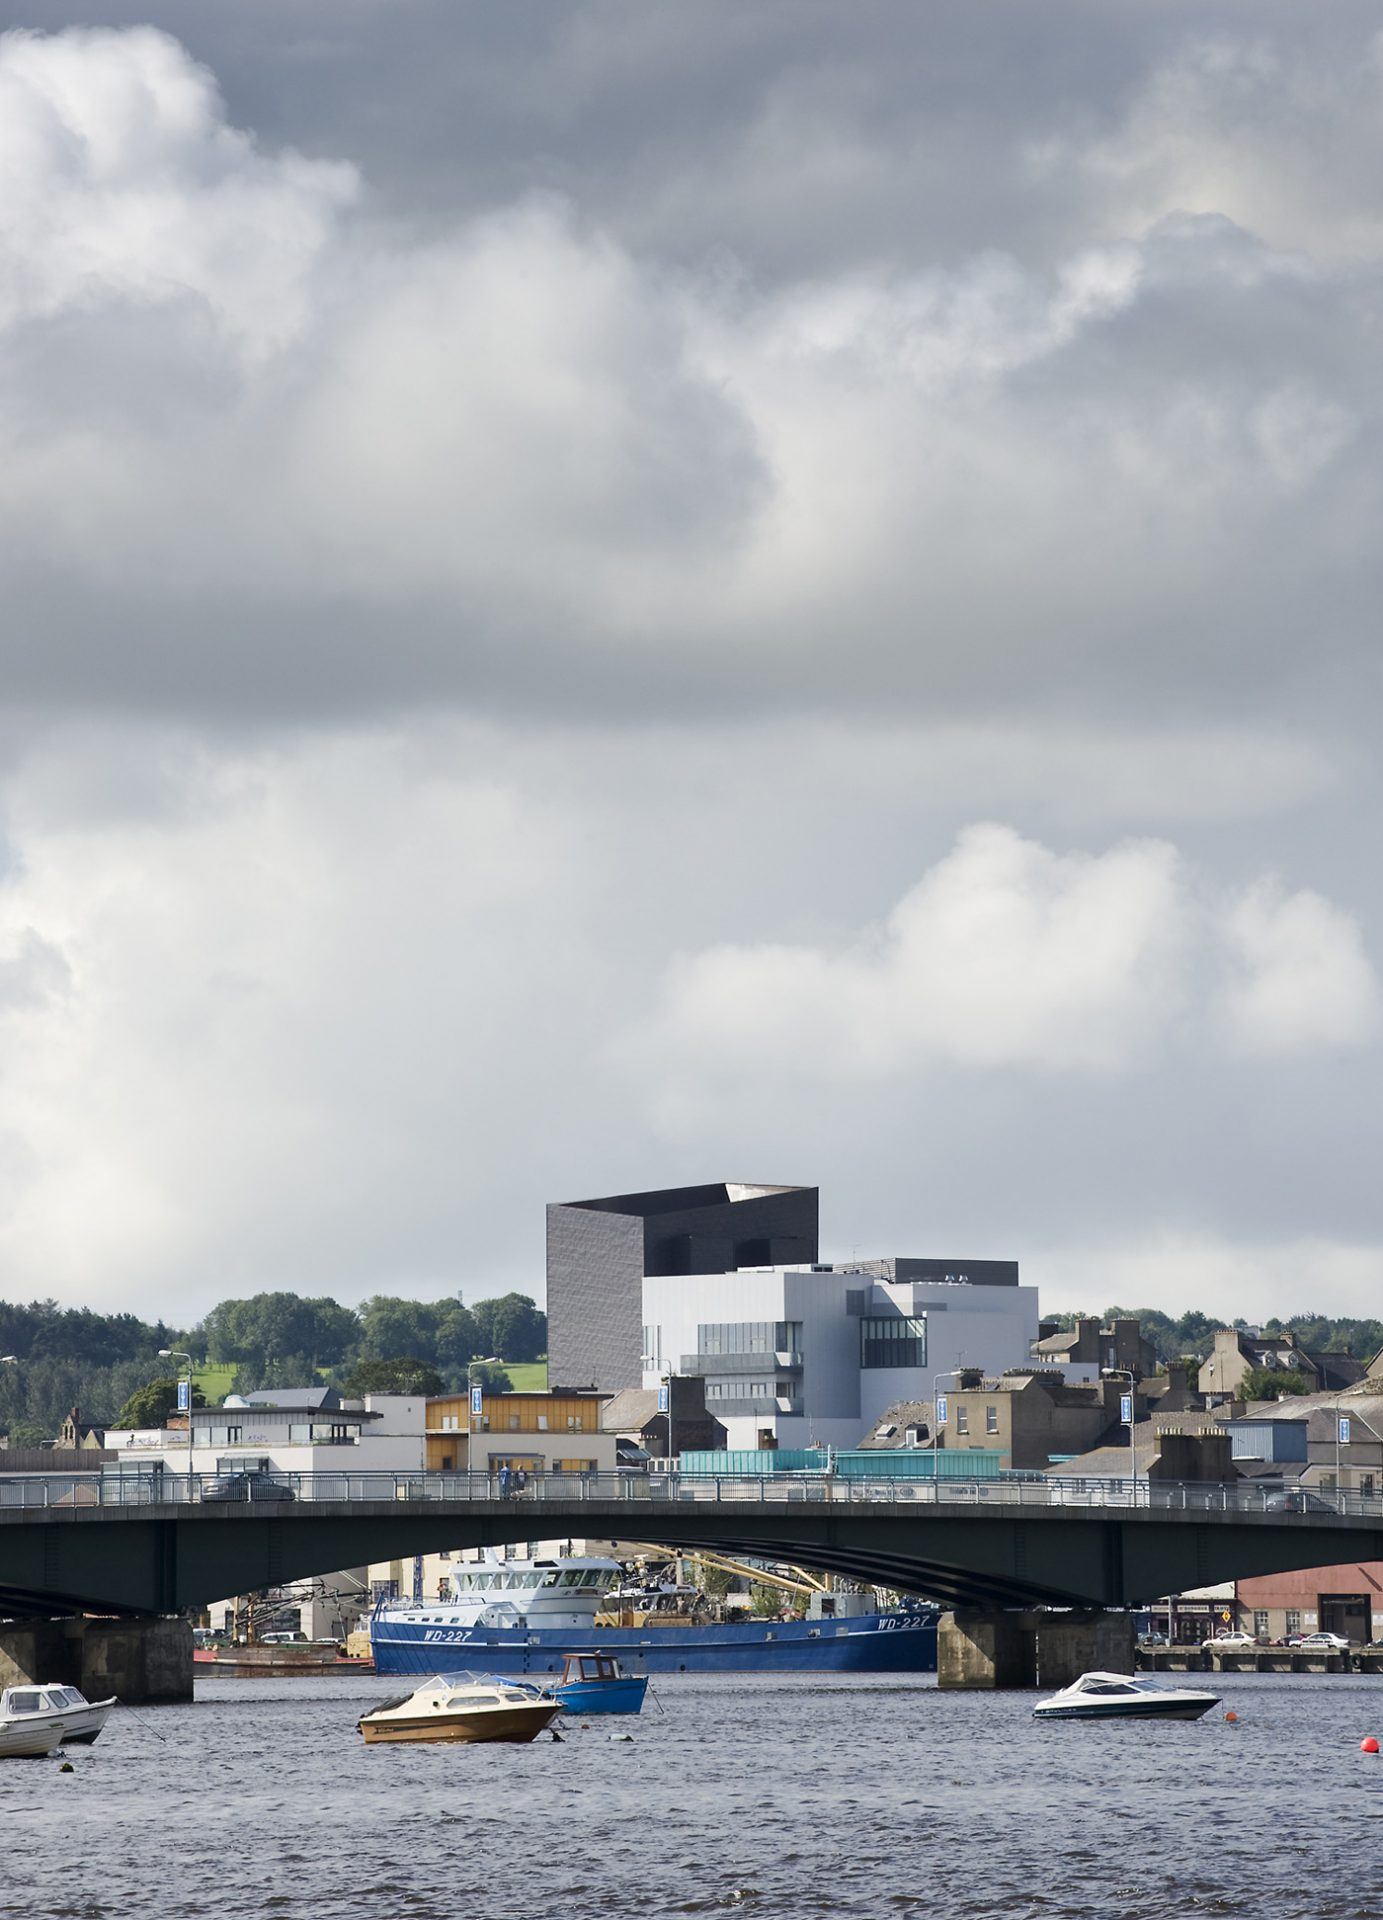 National Opera House viewed from across the River Slaney, Wexford Ireland